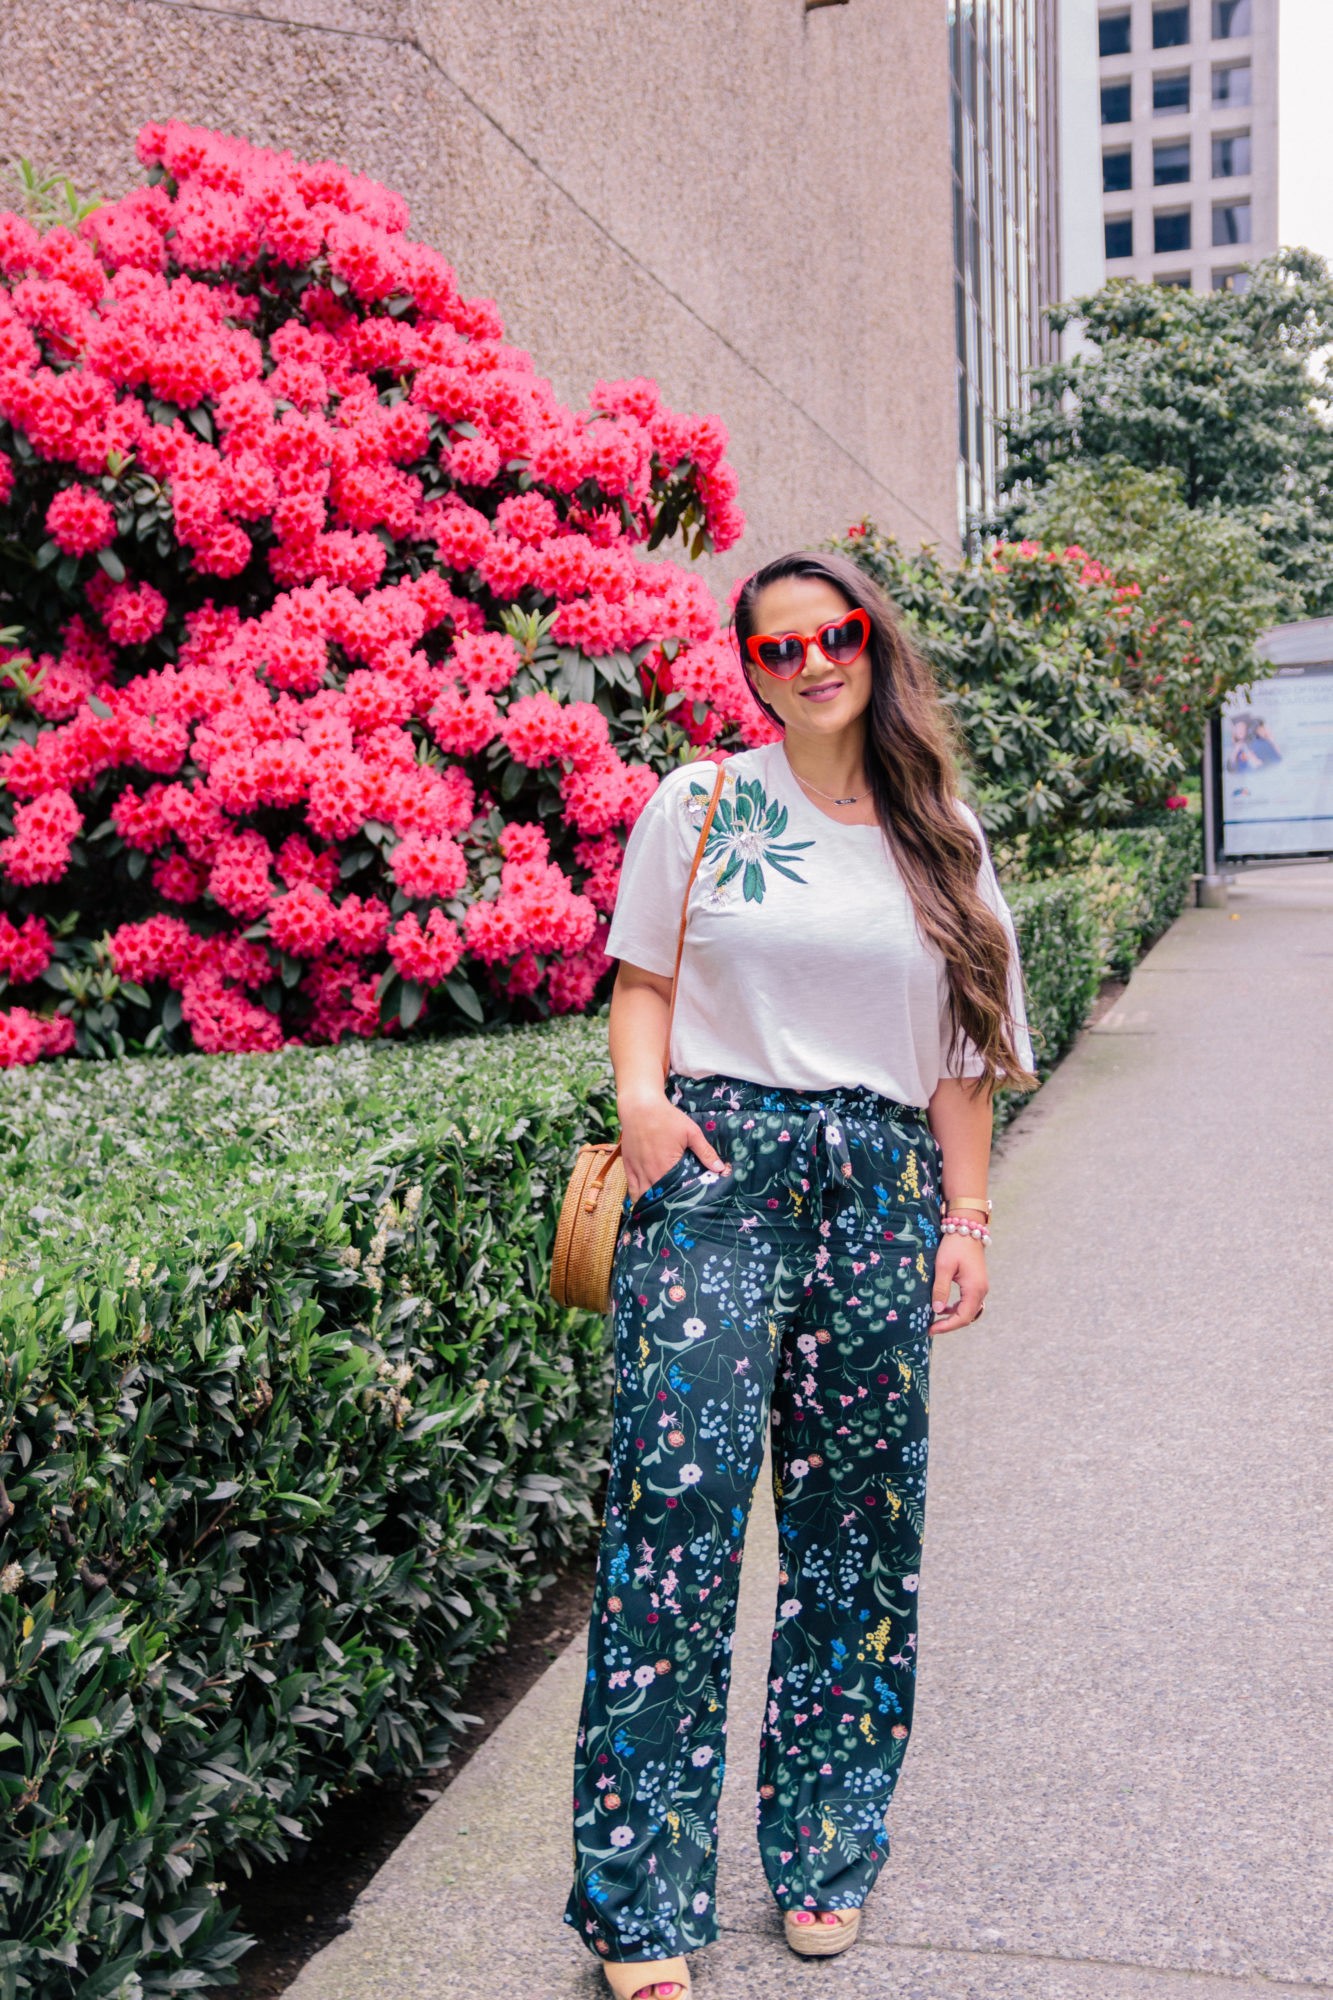 All about the floral pants